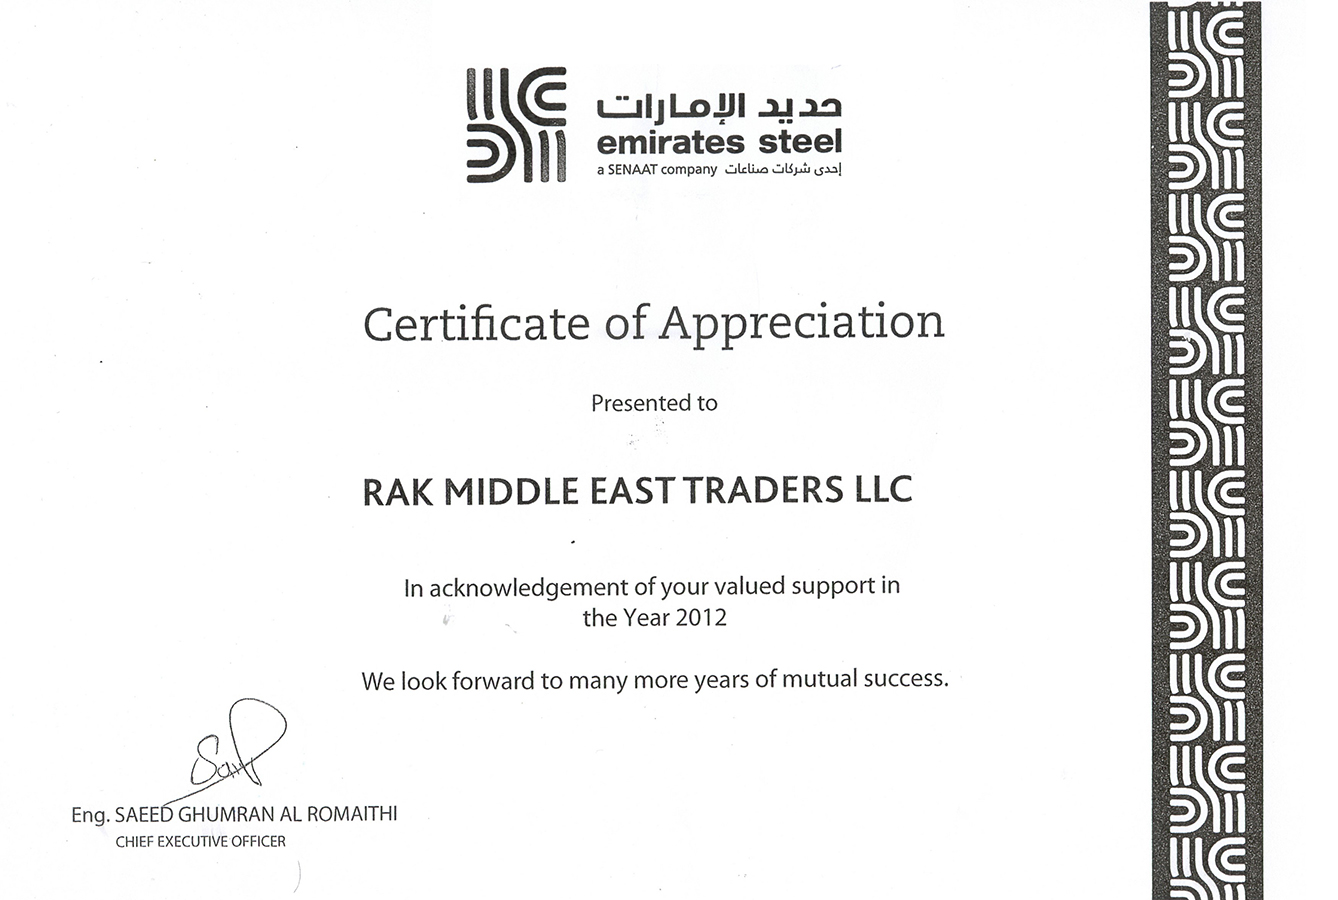 RAKMET - RAK Middle East Traders LLC DUBAI - Trading